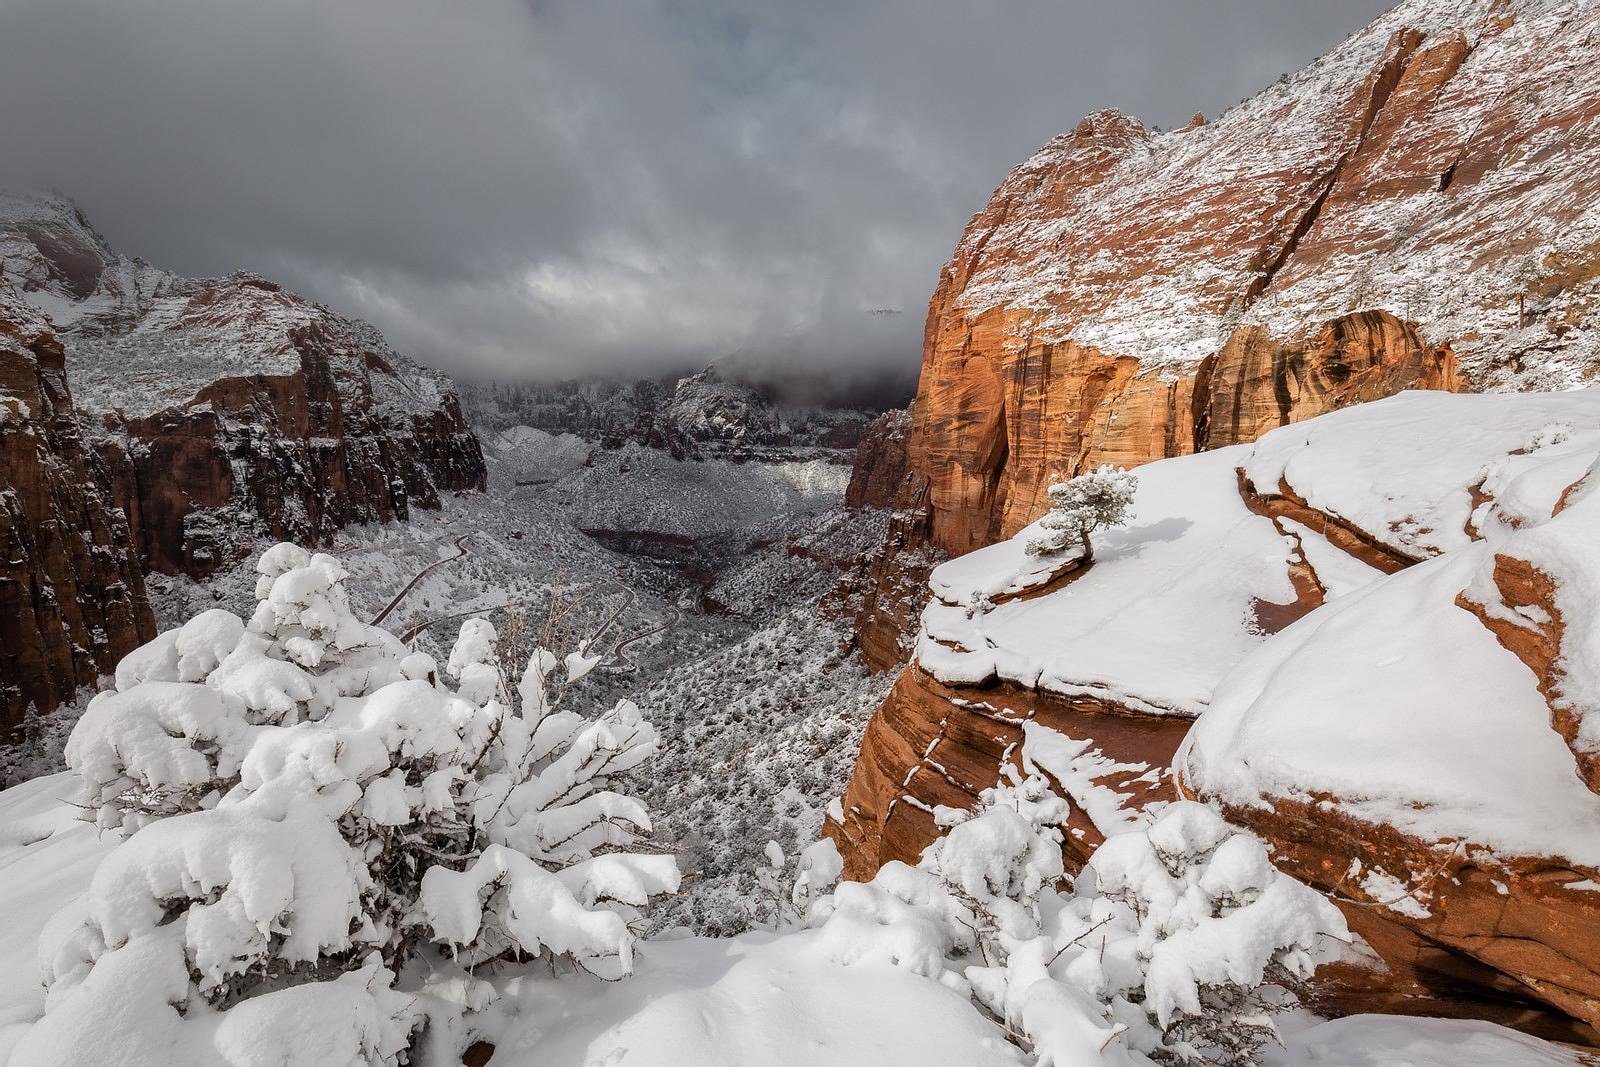 SNOWFALL IN ZION NP